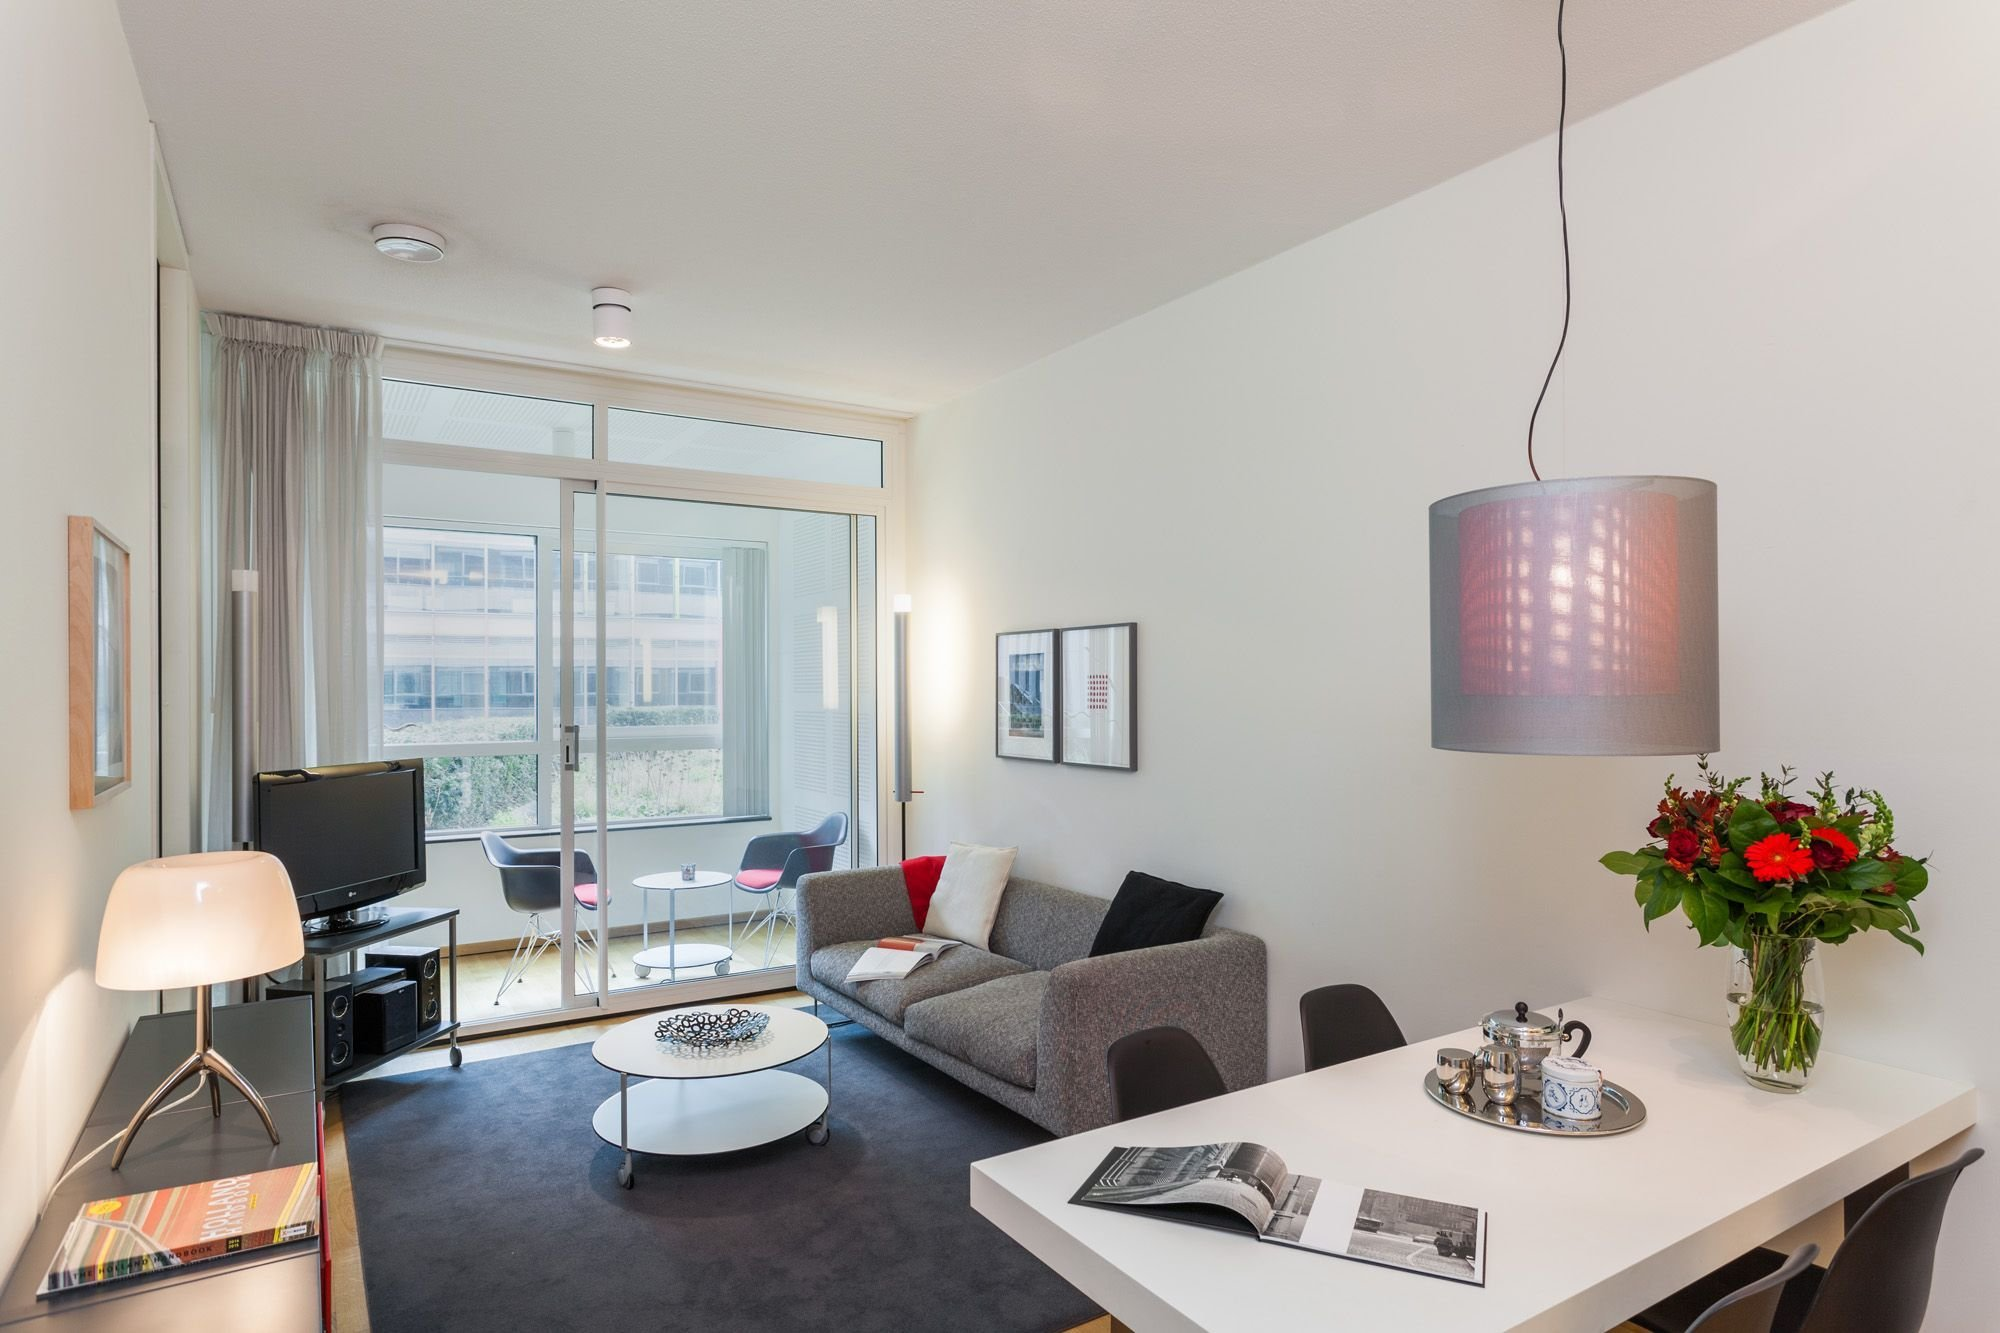 Best New Amsterdam 1 Bedroom Servicedapartments With Pictures Original 1024 x 768